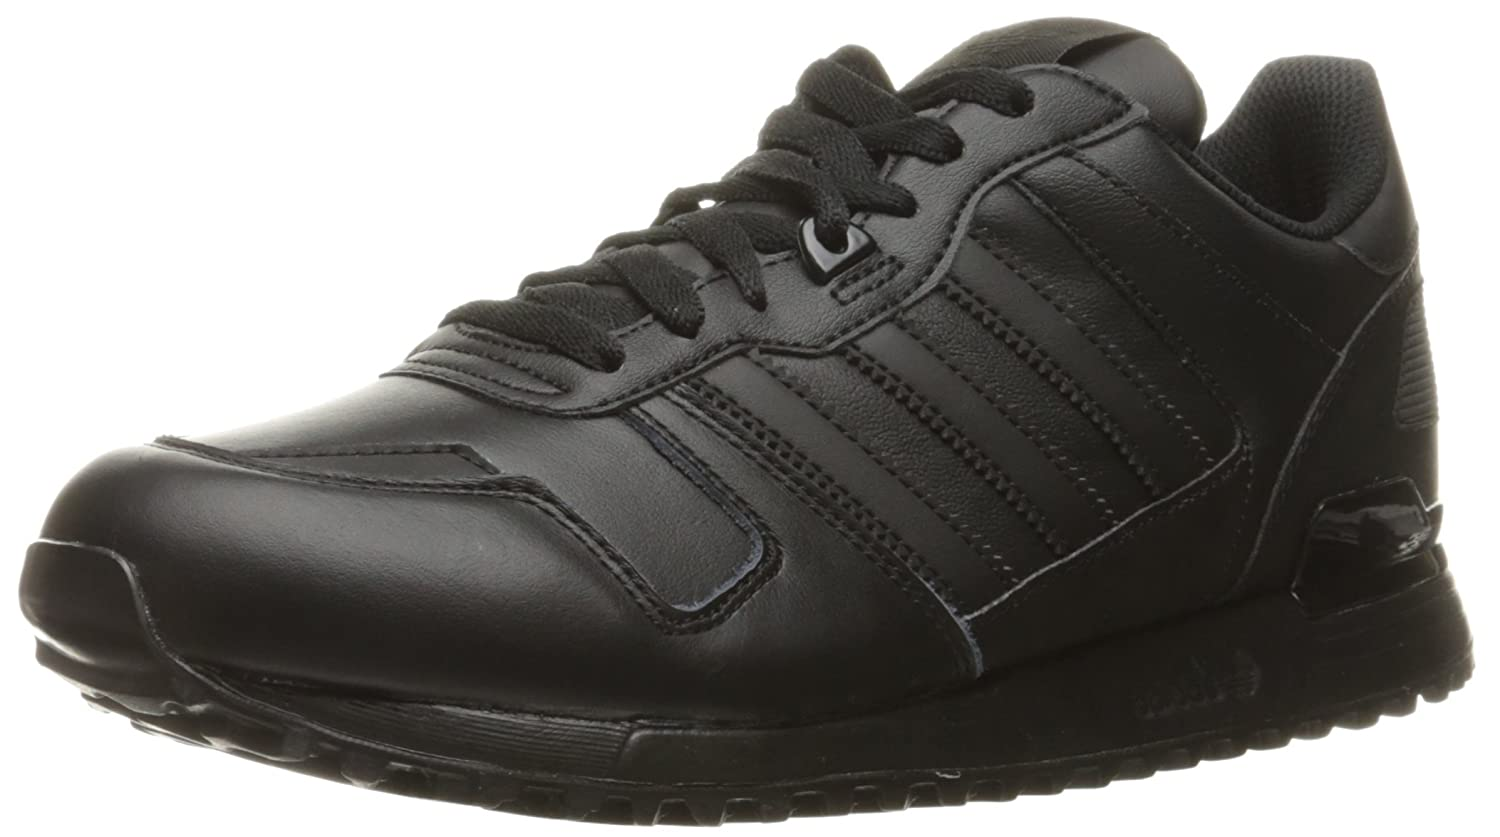 sports shoes f0bbe 7db9a Amazon.com   adidas Originals Men s ZX 700 Lifestyle Runner Sneaker   Shoes